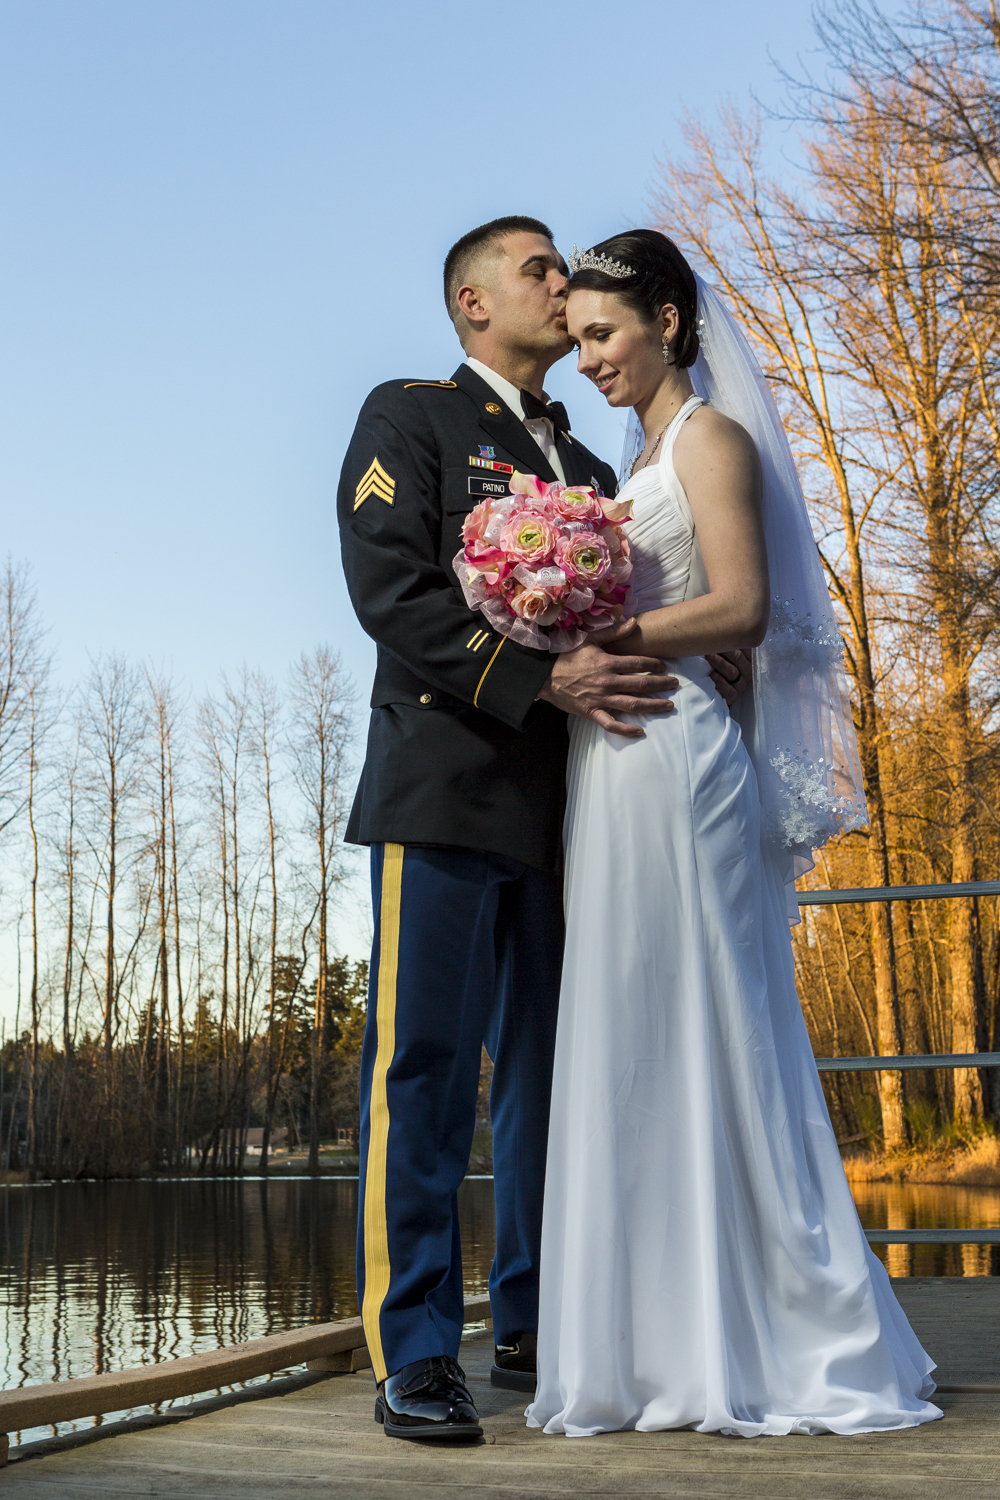 seattle_pnw_photographer_wedding_photographer_weddingphotography_modernweddings_beautifulbride_seattlebride_bellevuebride_pnwbride_washington_tacoma_militaryweddings_jblm_jointbase-34.jpg